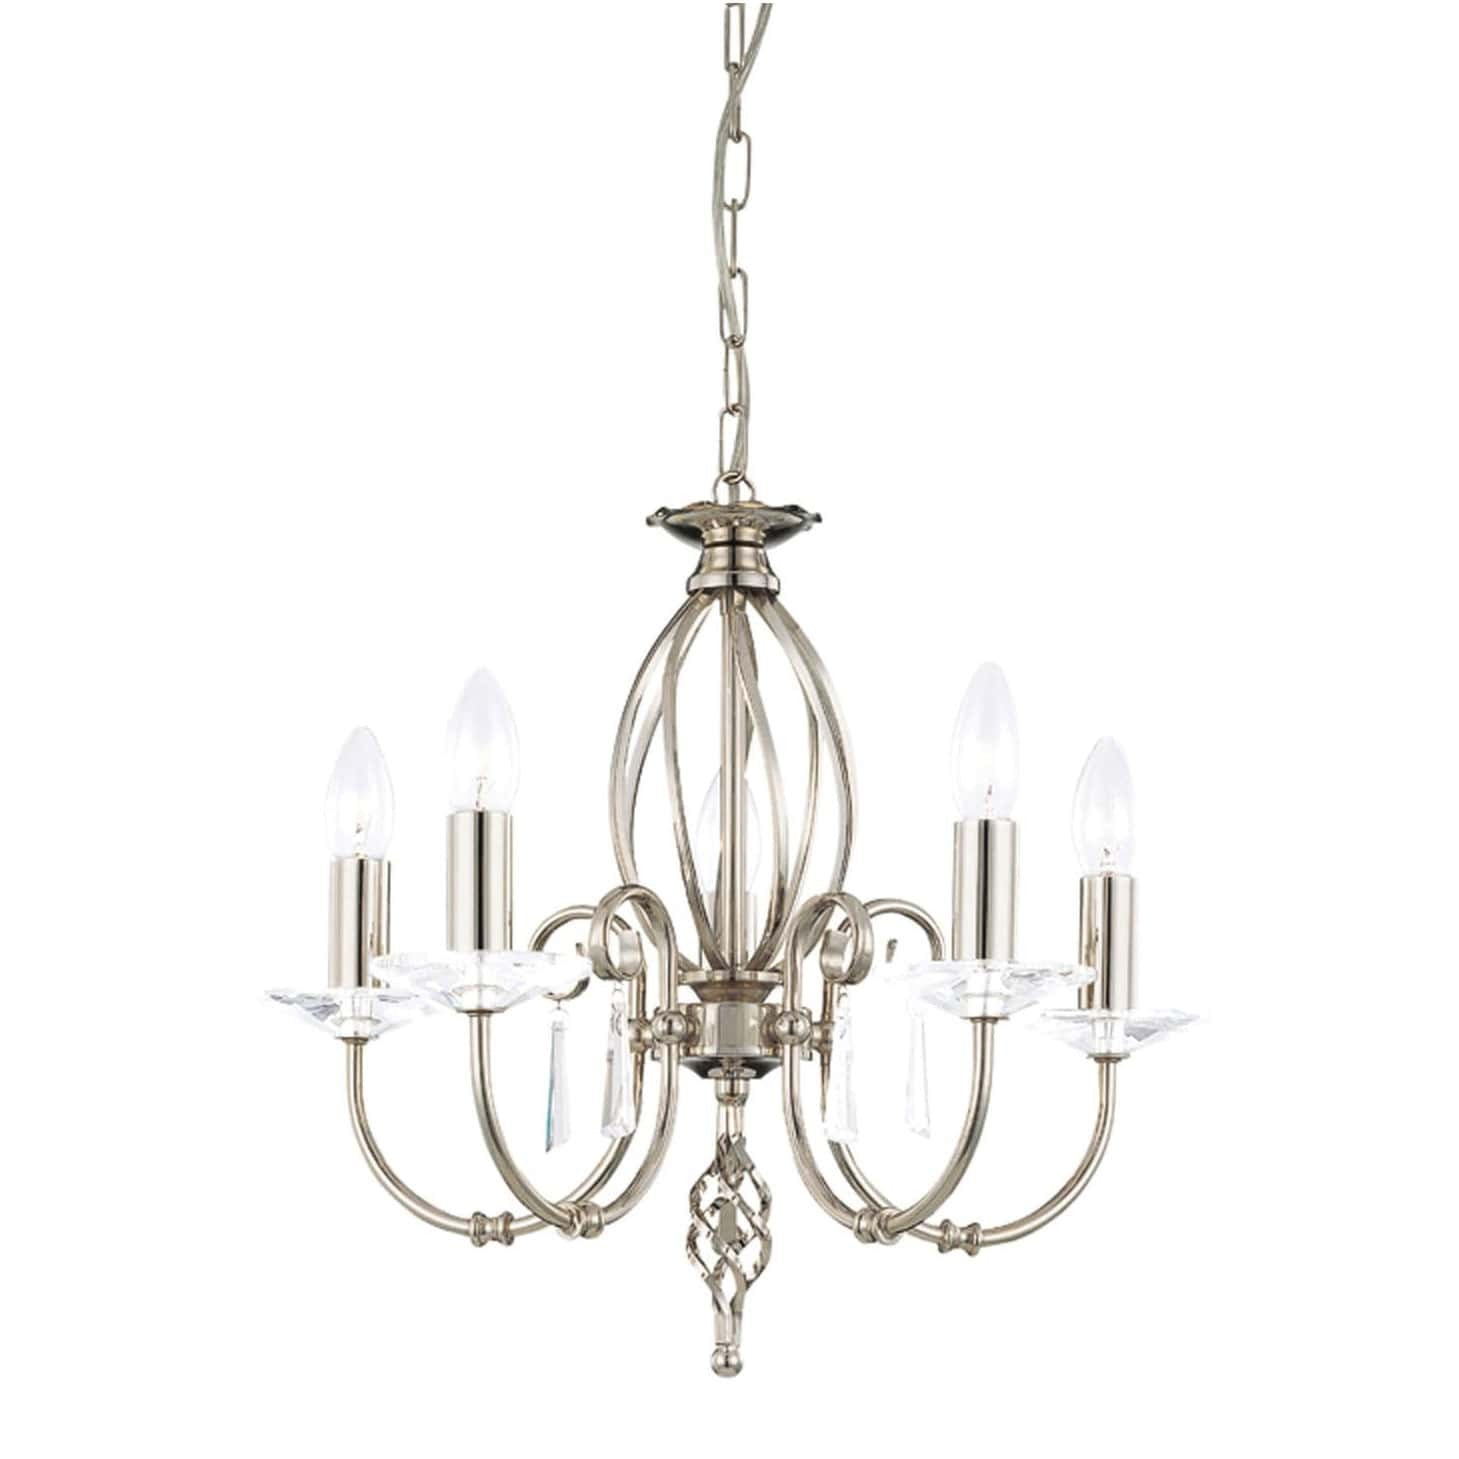 skye pavilion glass libra broadway nickel ribbon chandelier